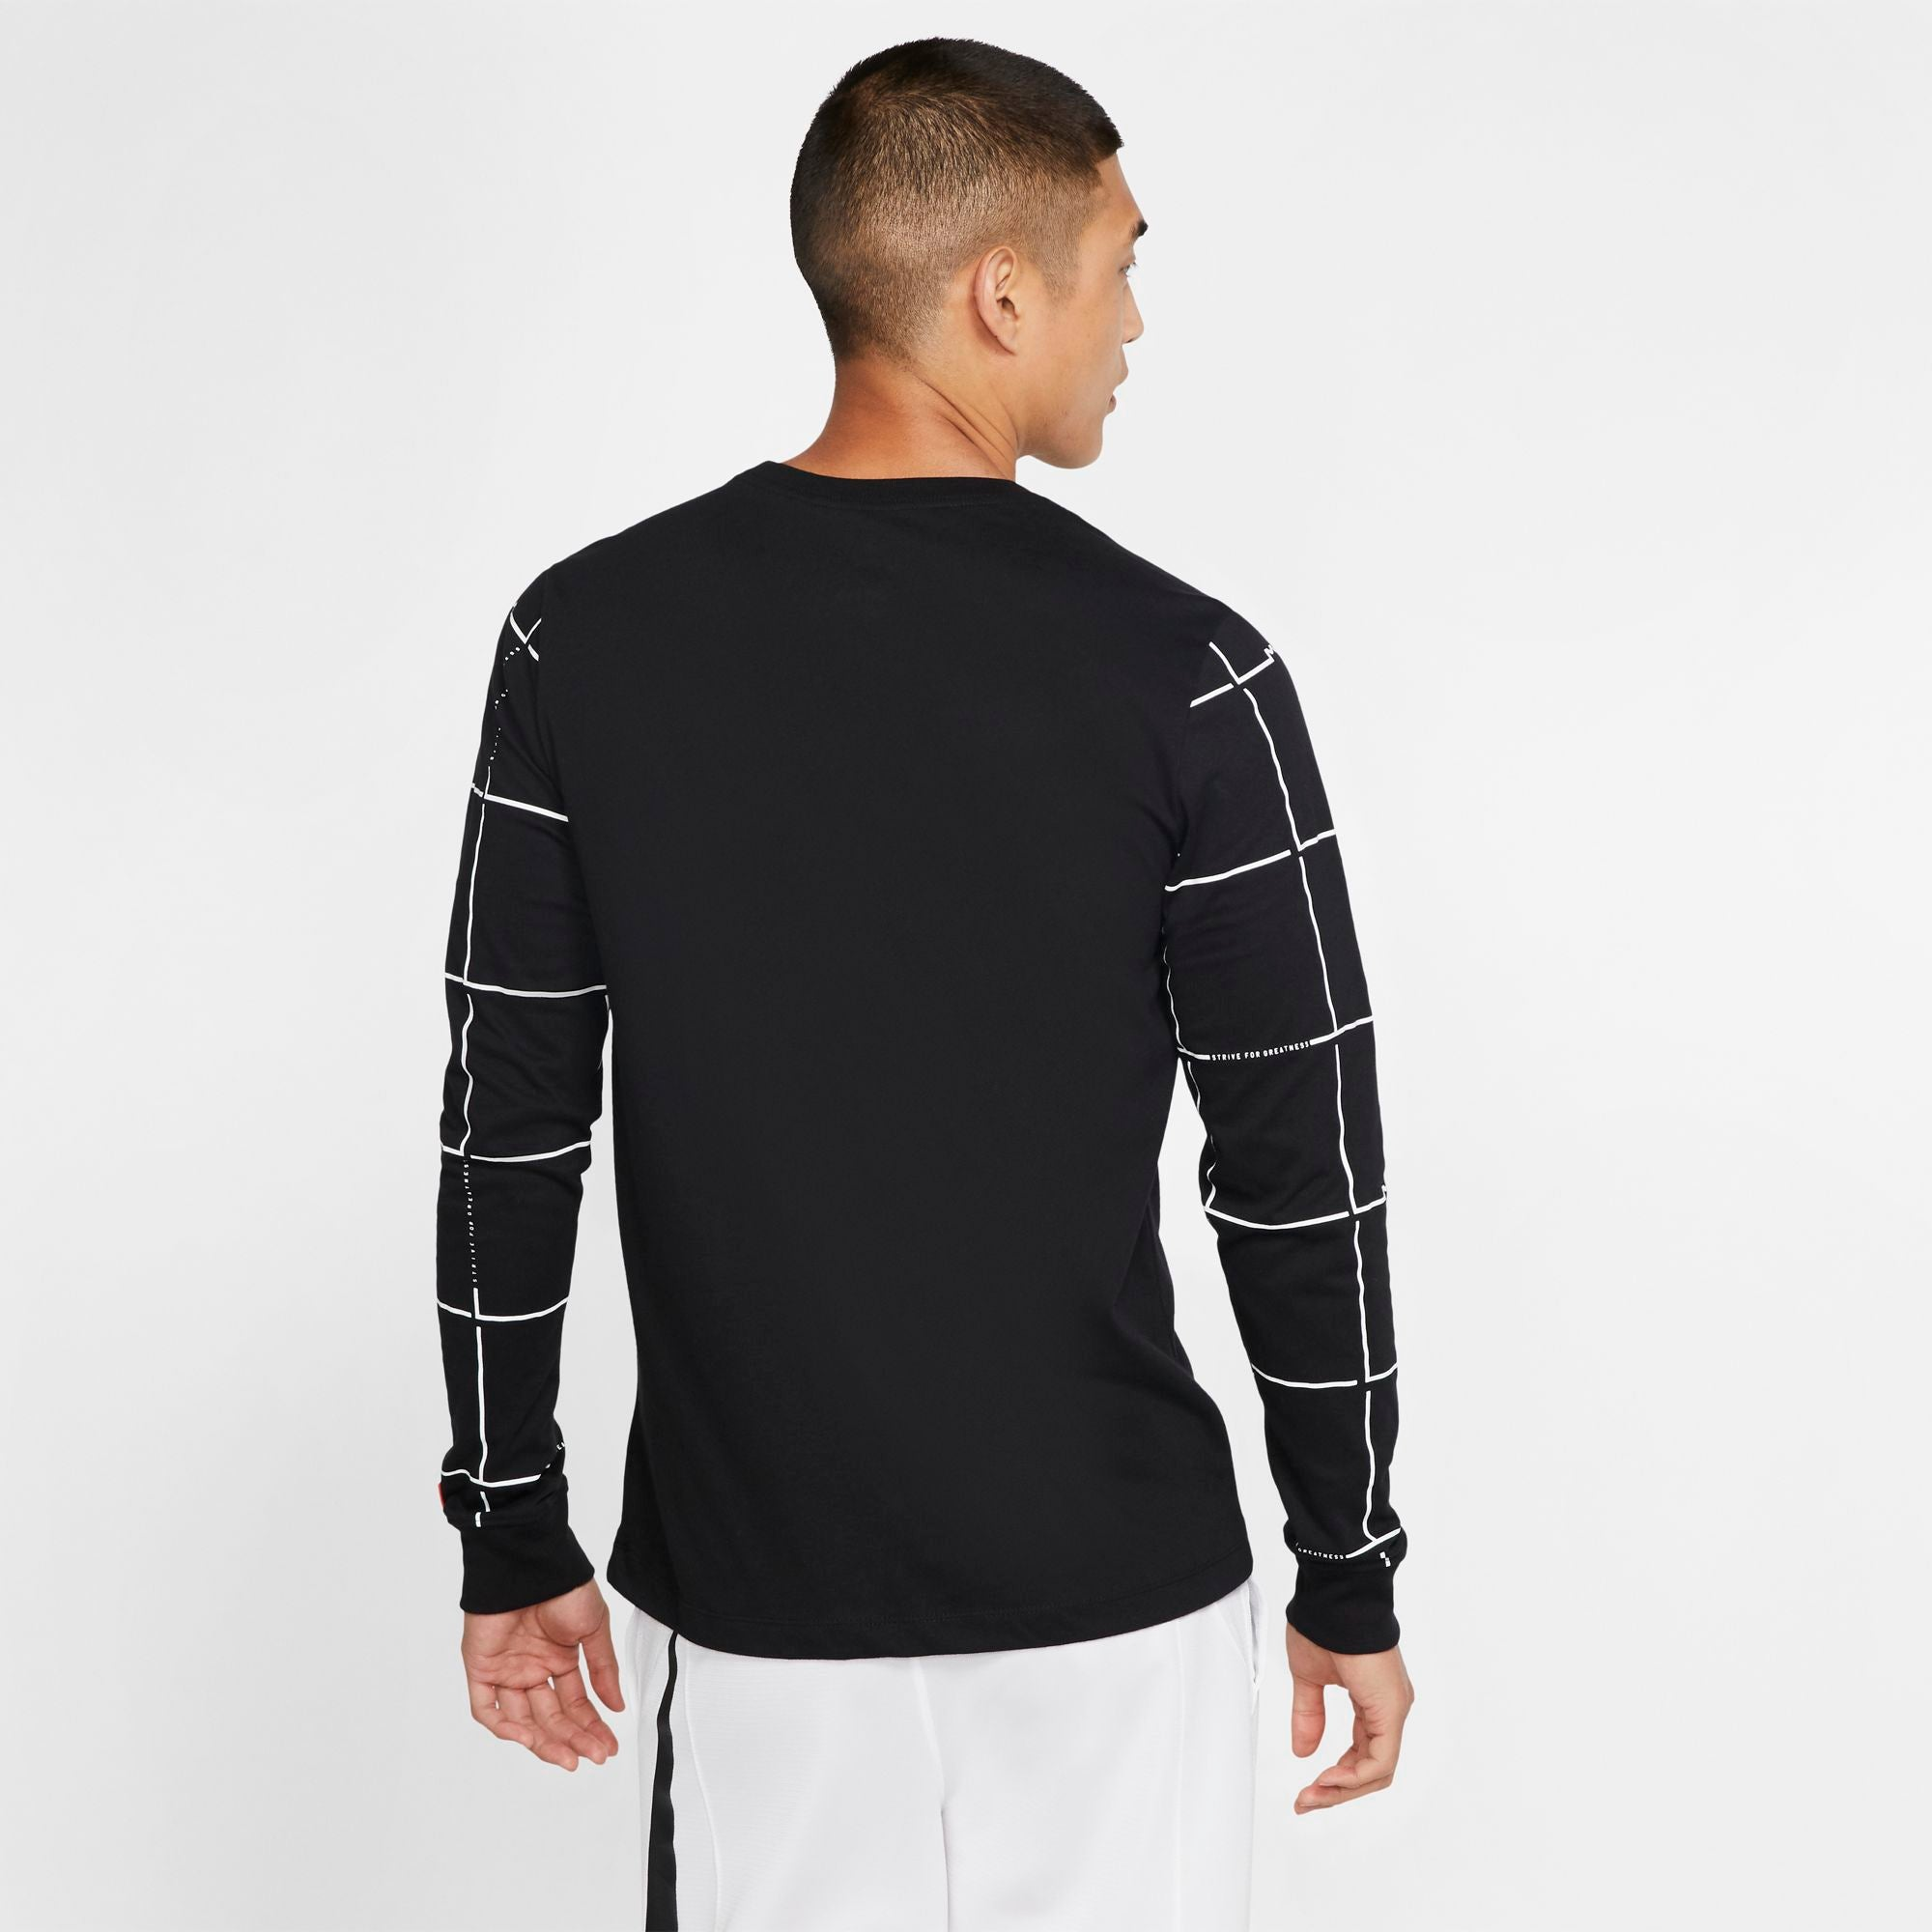 Nike Lebron Dri-fit Long-Sleeved Basketball Tee - Black